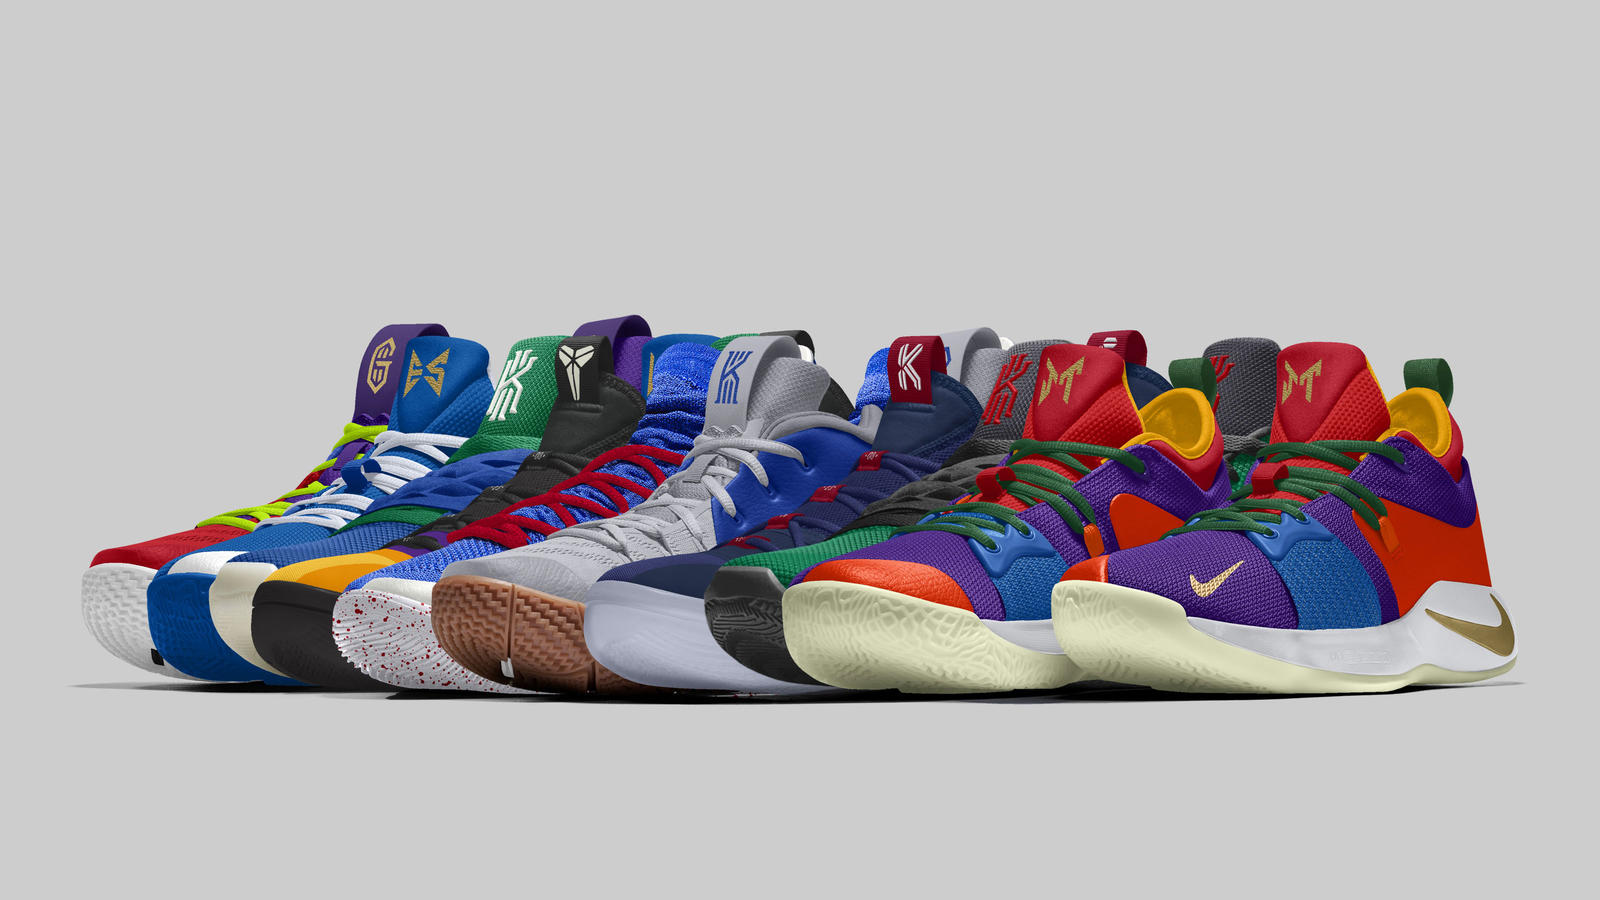 Nike nbapes openingweek2018 19 groupshot square hd 1600